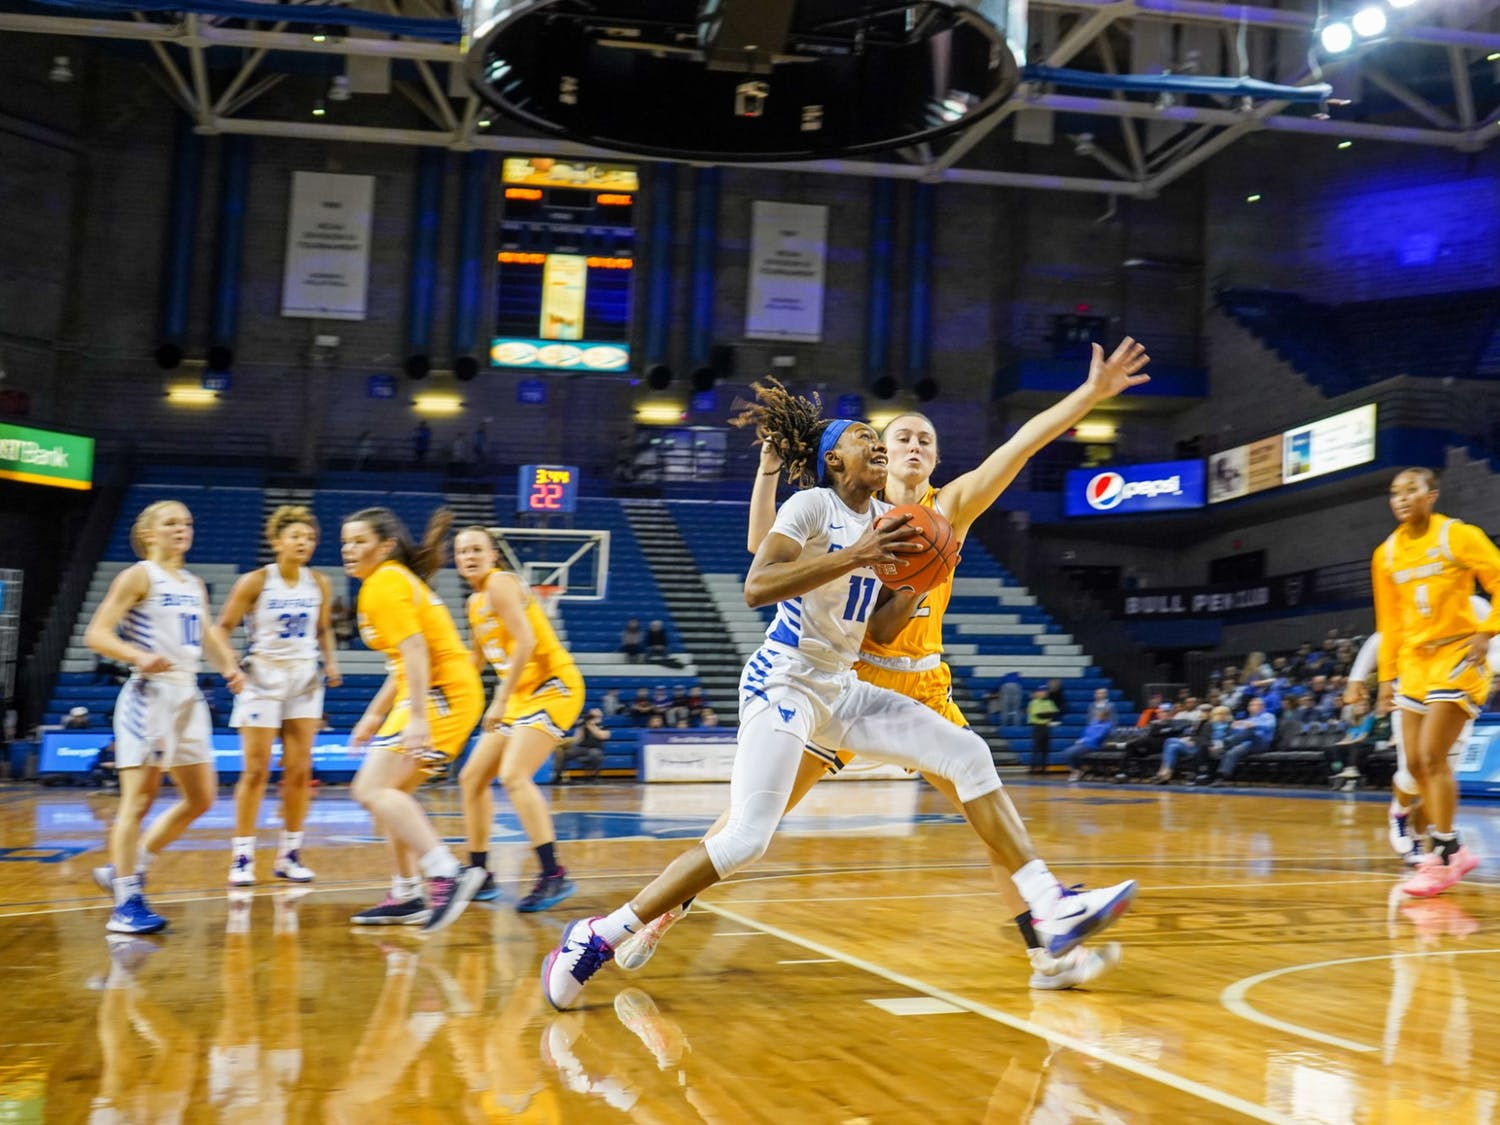 Former UB women's basketball guard Theresa Onwuka goes in for a shot during the game against Kent State in the Alumni Arena on March 6, 2020.